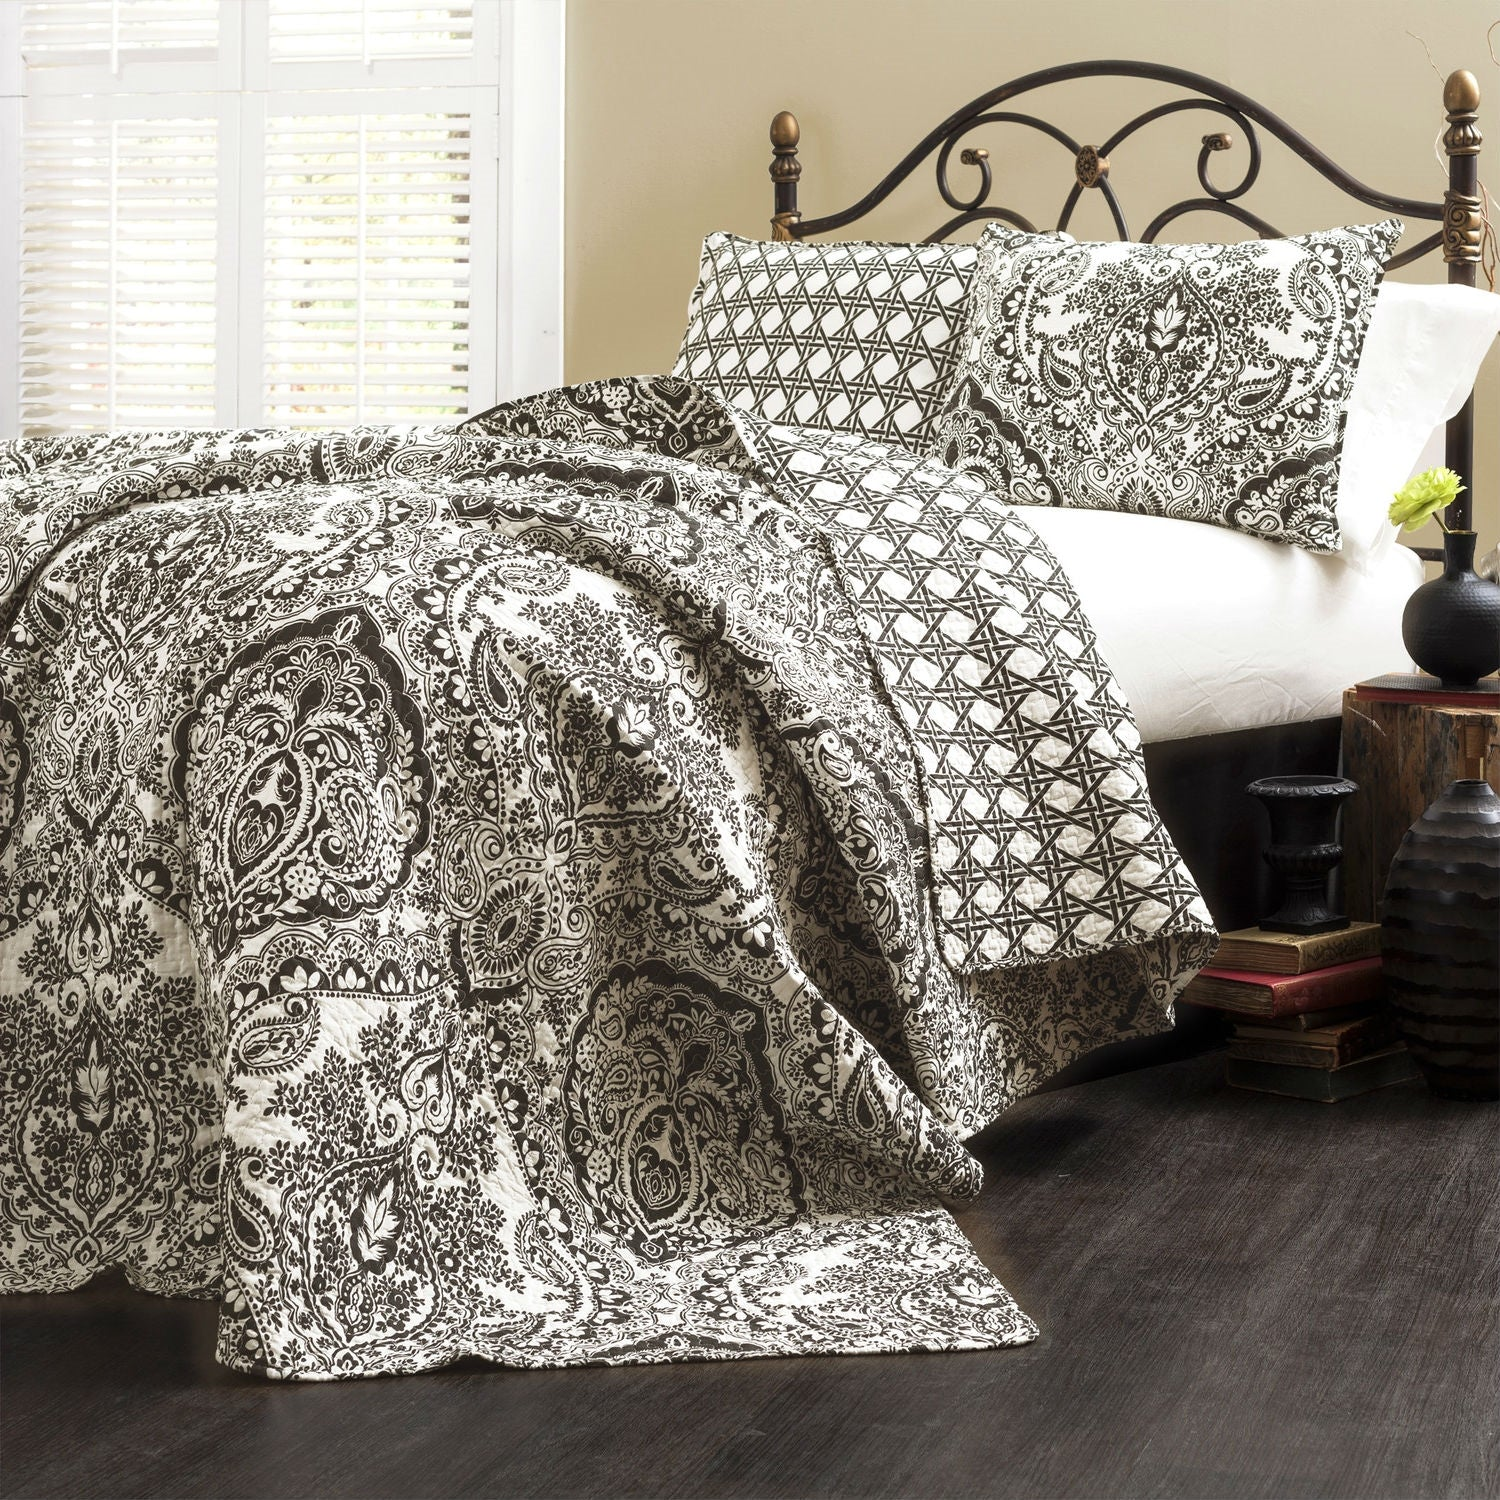 King size 3-Piece Cotton Quilt Set in Black White Paisley Damask